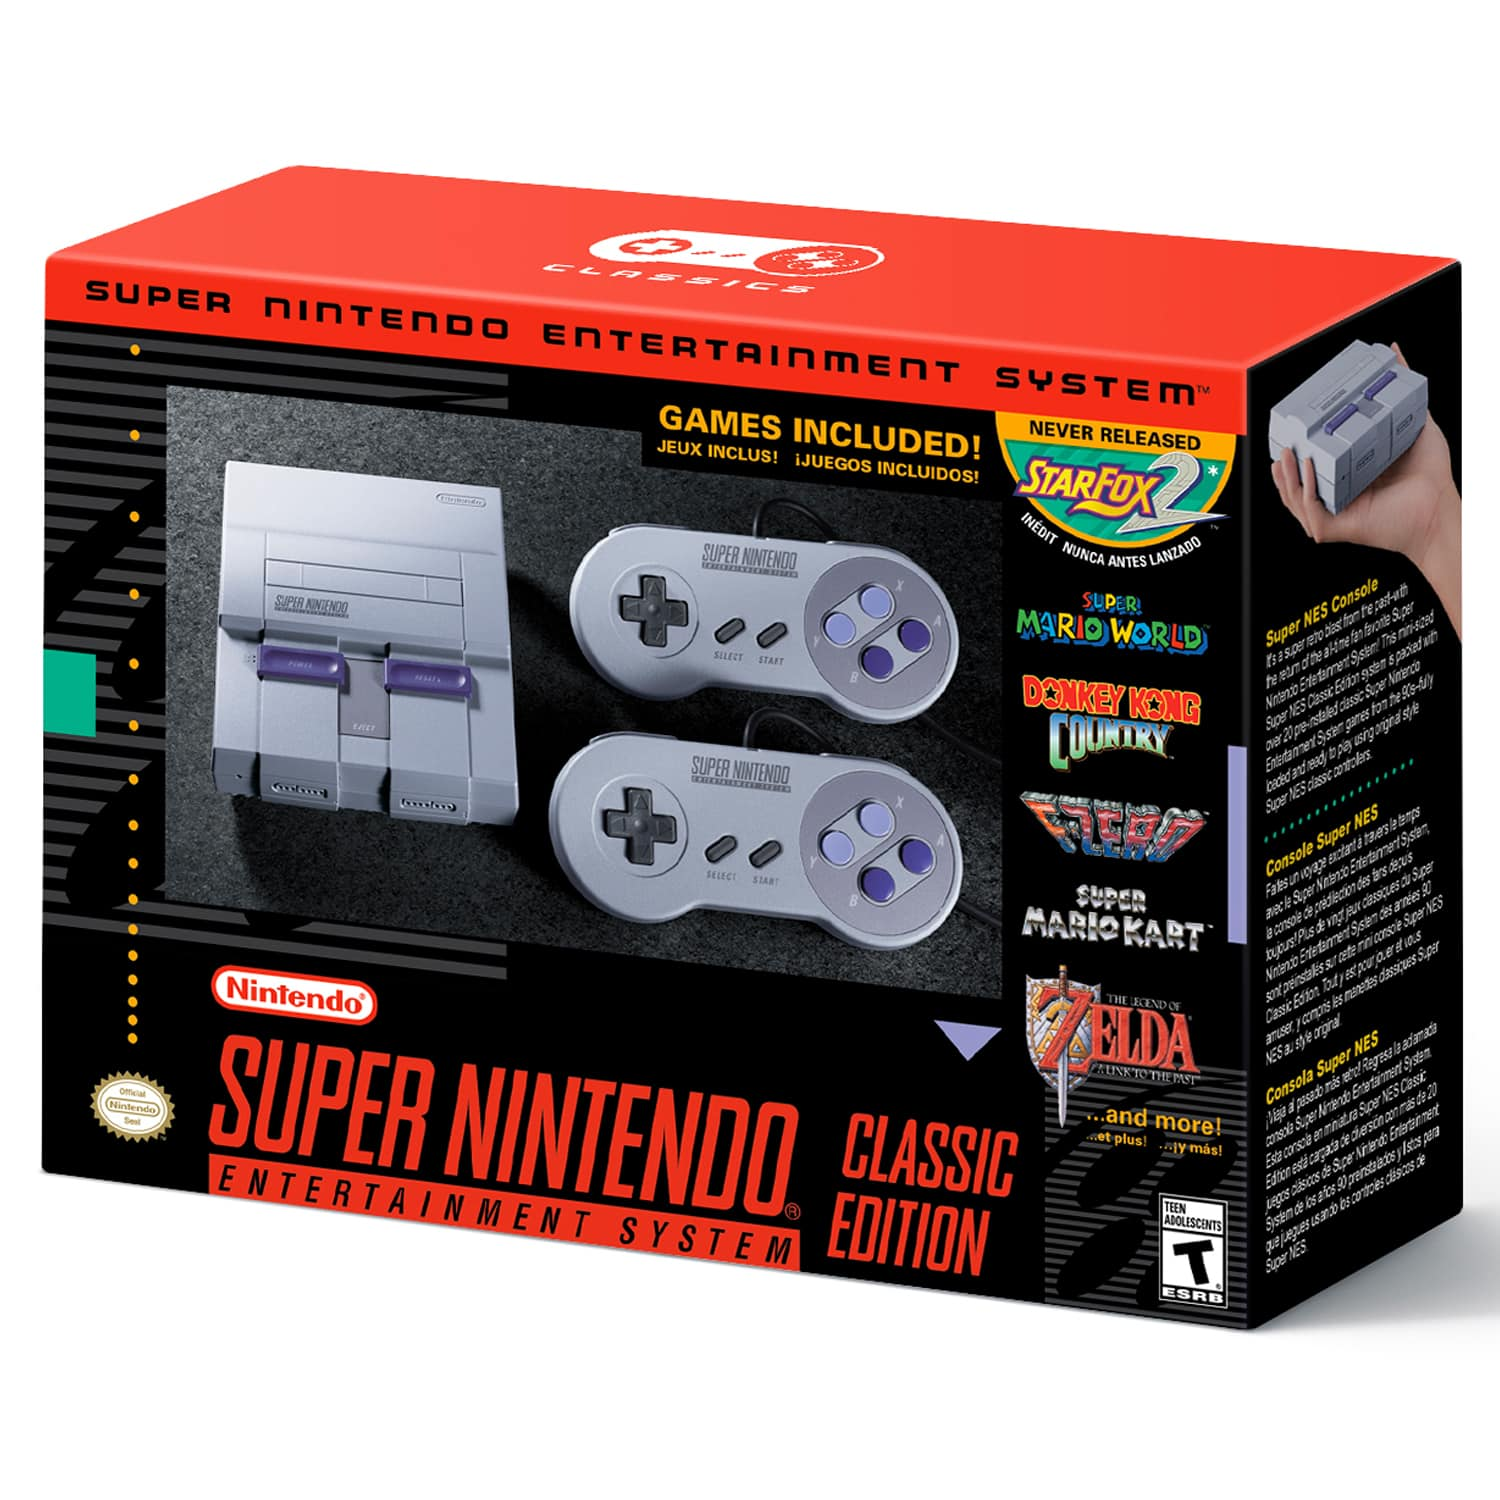 SNES Classic at Walmart.com daily 11/15 - 11/17 at 11 AM PST $79.99